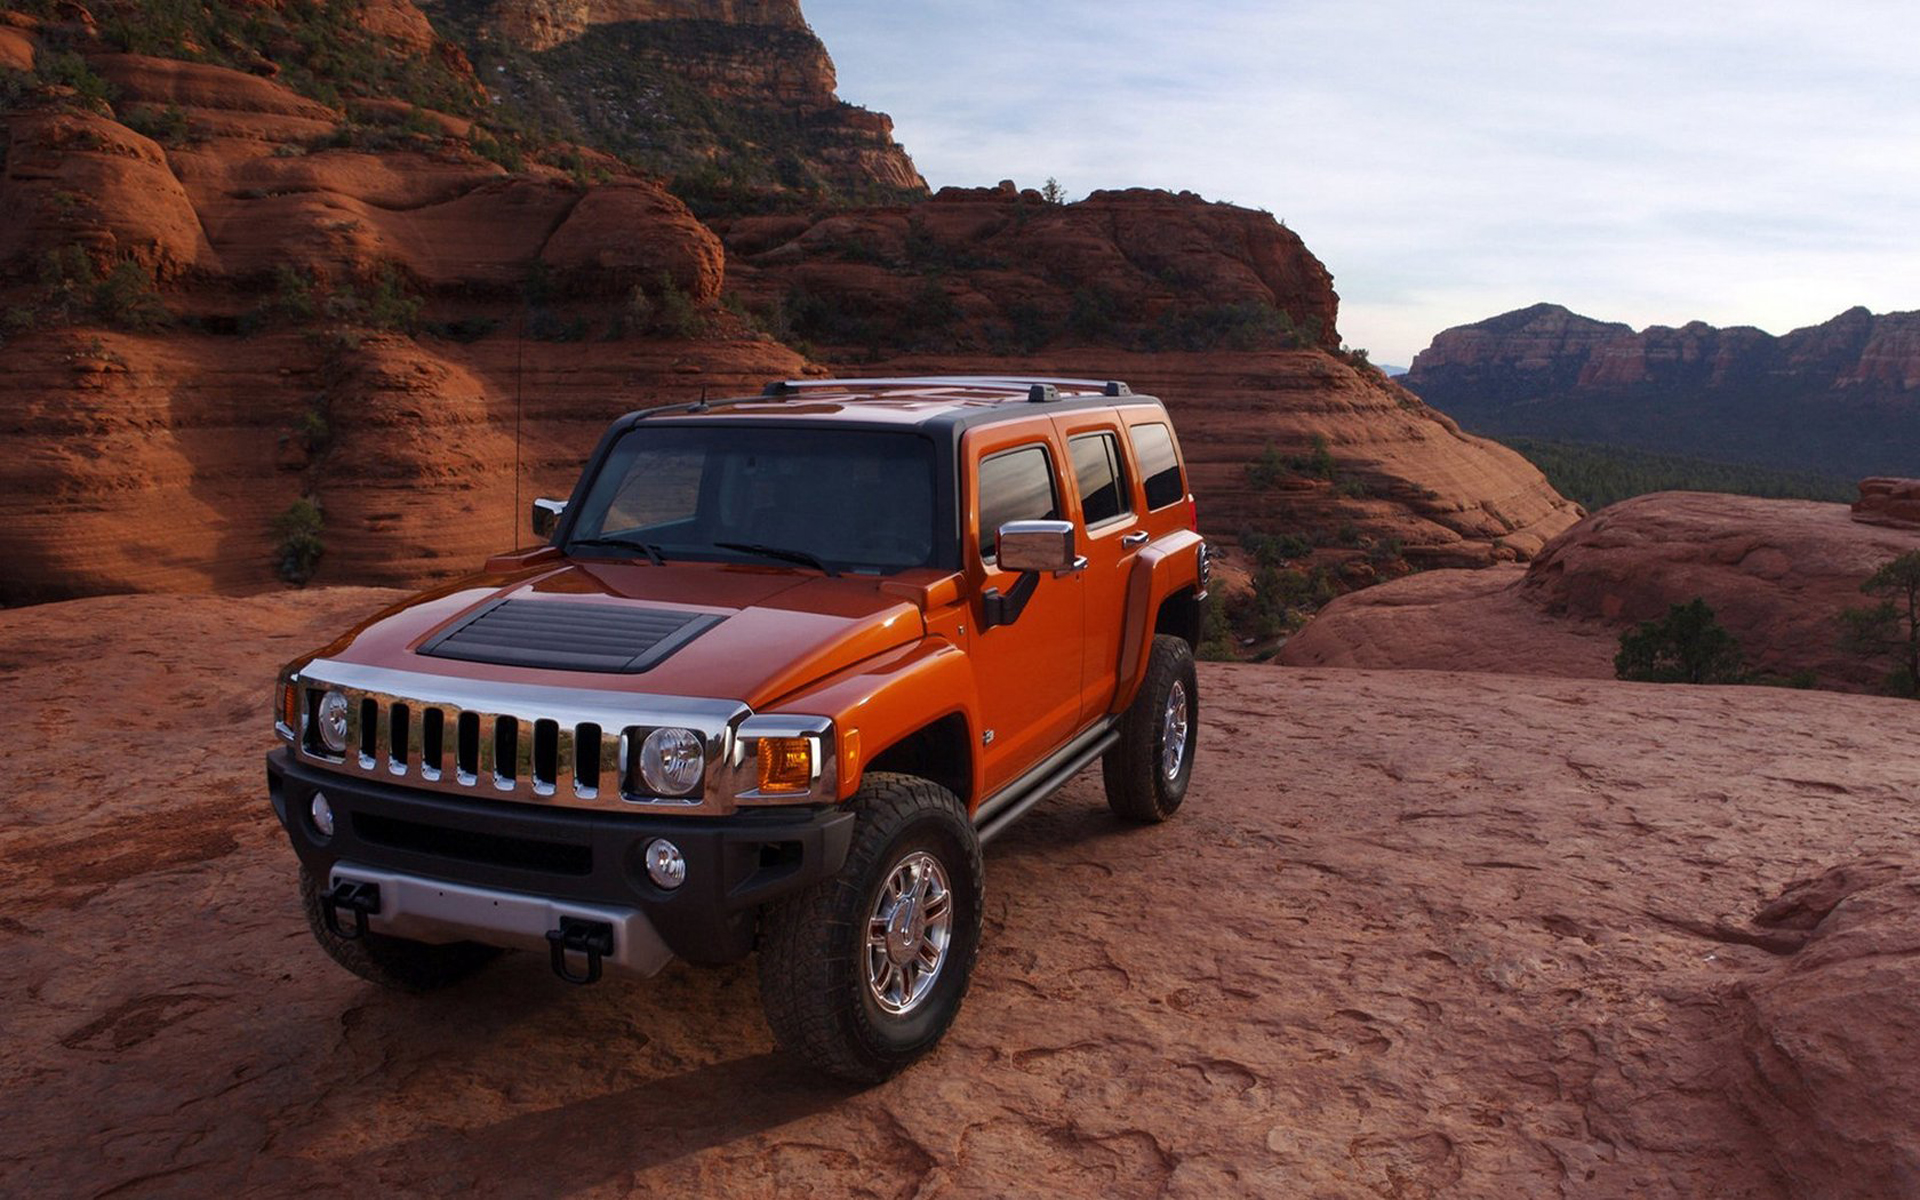 13 hummer h3 hd wallpapers | background images - wallpaper abyss